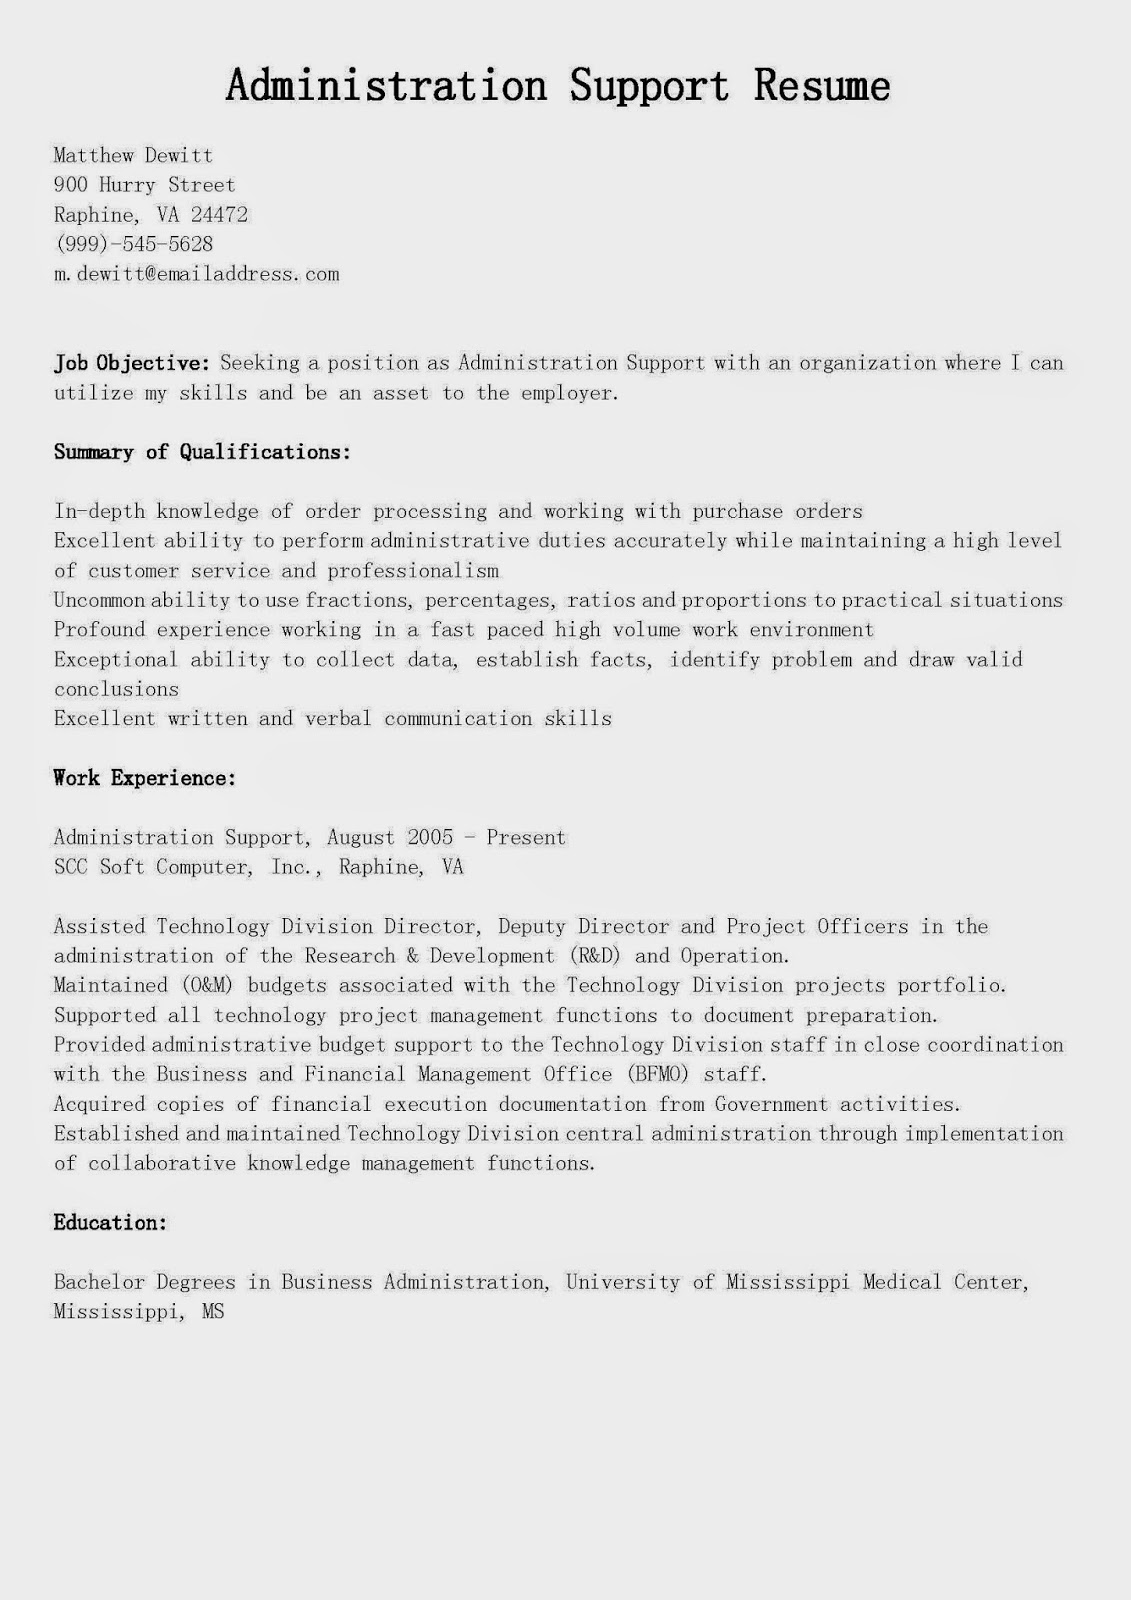 Resume Samples Administration Support Resume Sample